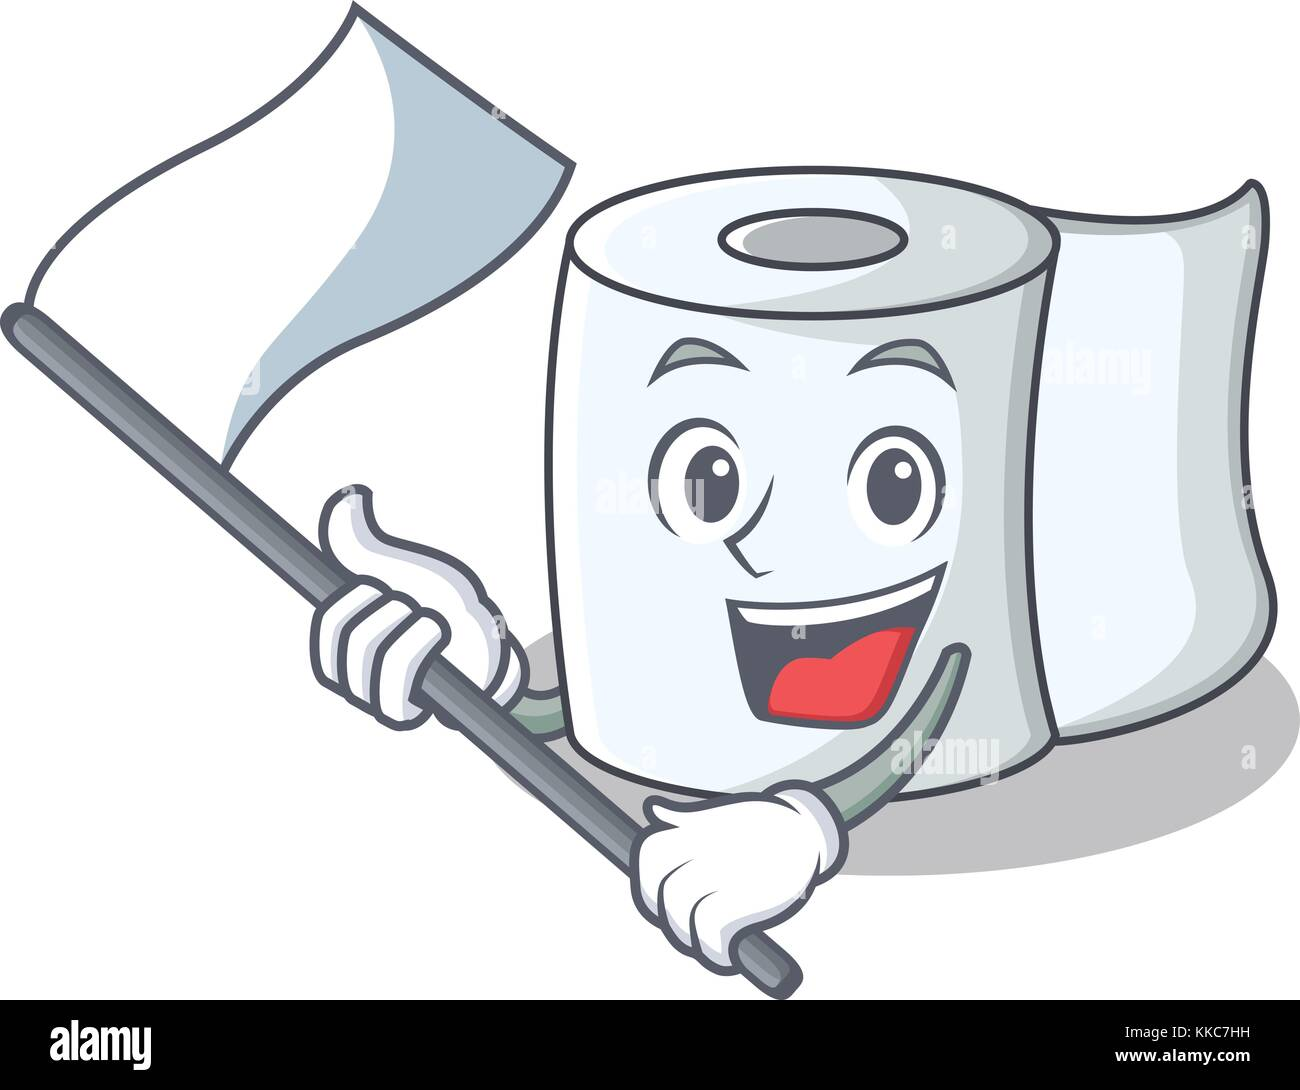 Sonnenstuhl Clipart Toilet Jack Stock Photos Toilet Jack Stock Images Alamy